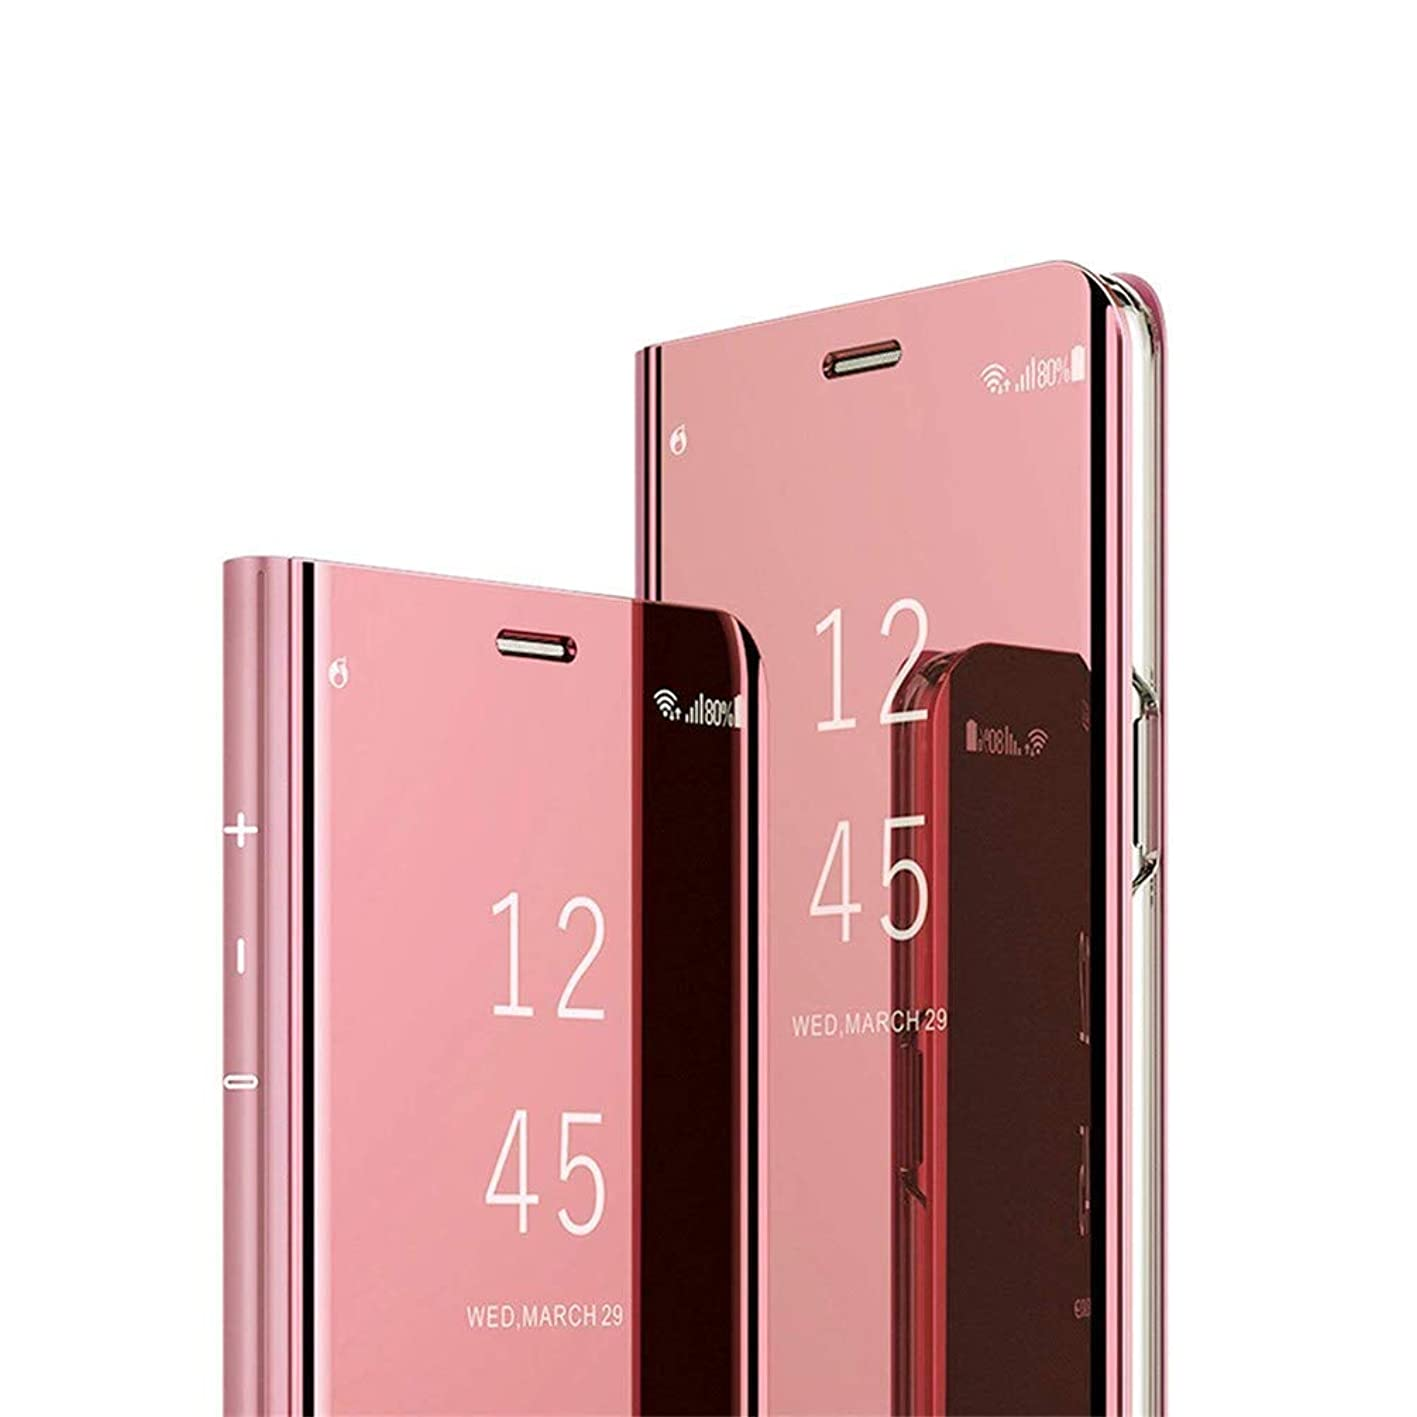 HMTECHUS Case for Galaxy S10 5G Luxury Bookstyle Clear View Window Electroplate Plating Stand Scratchproof Protective Flip Folio Cover for Samsung Galaxy S10 5G 6.7 inch PU Mirror:Rose Gold MX hbskegpretf209